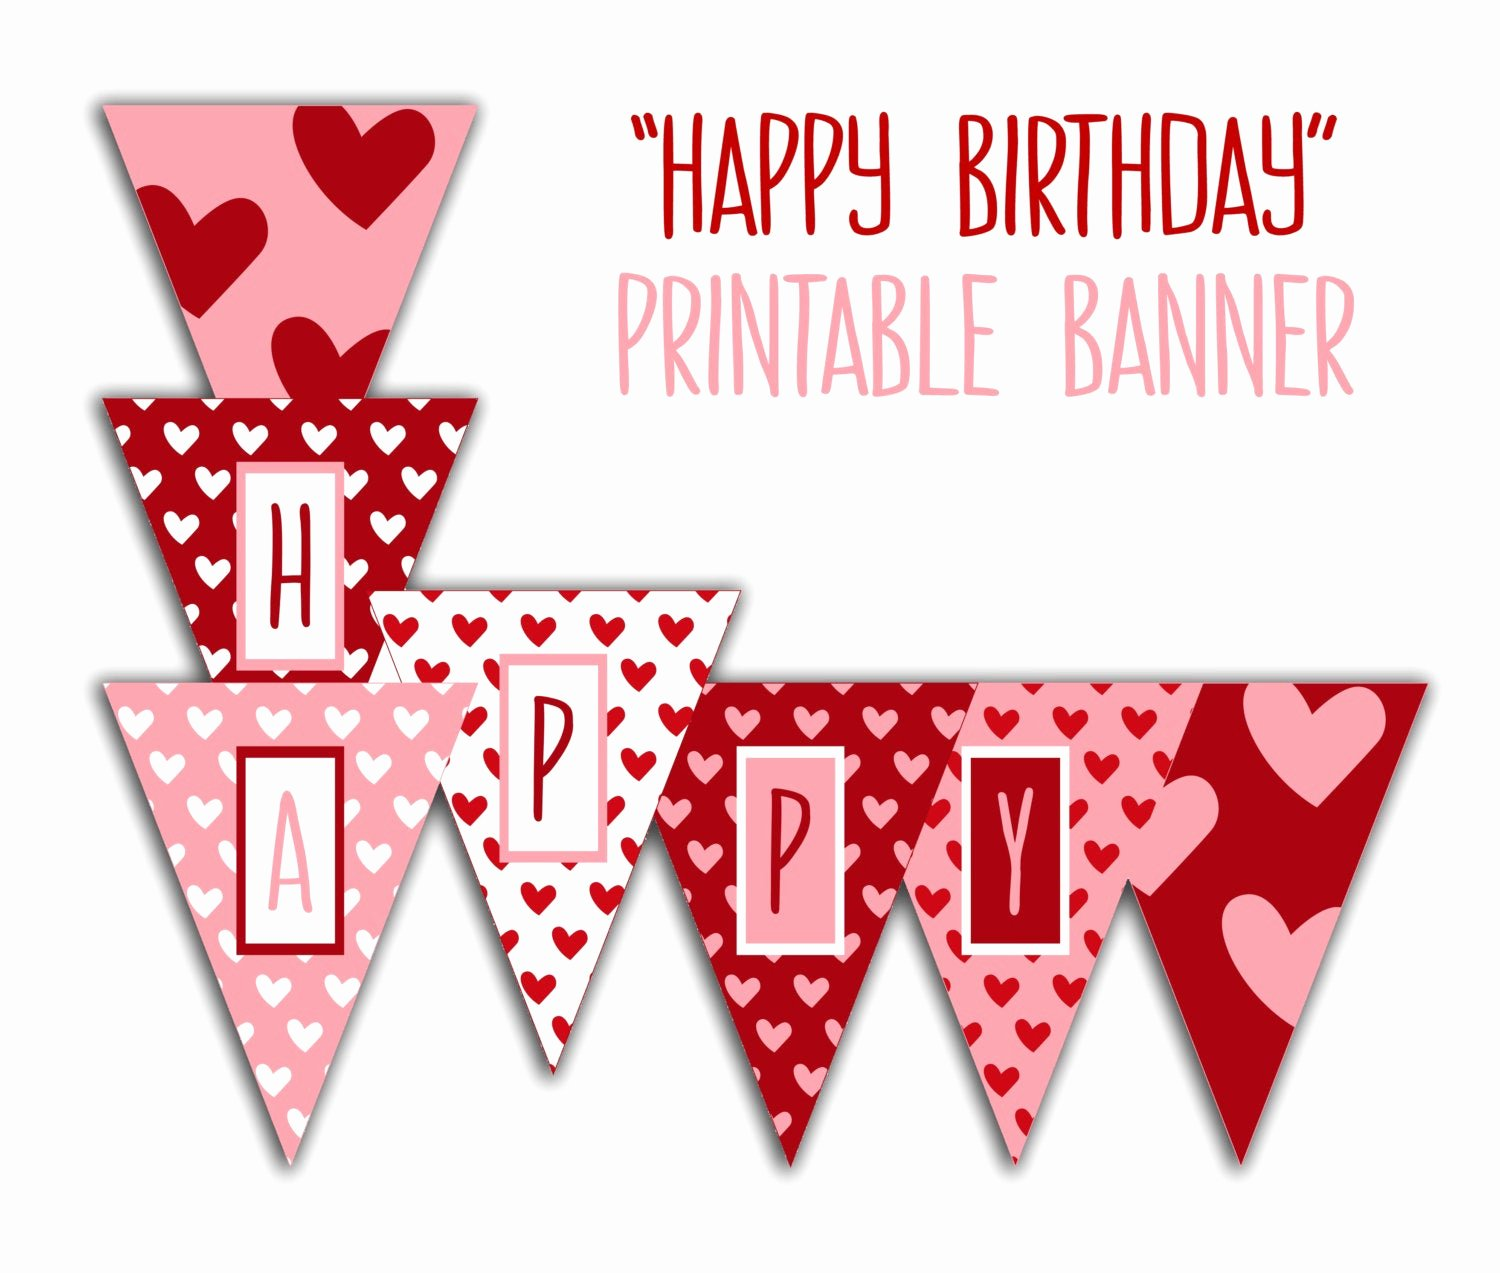 Printable Happy Birthday Banners Lovely Happy Birthday Banner Birthday Party Printable Sign Red